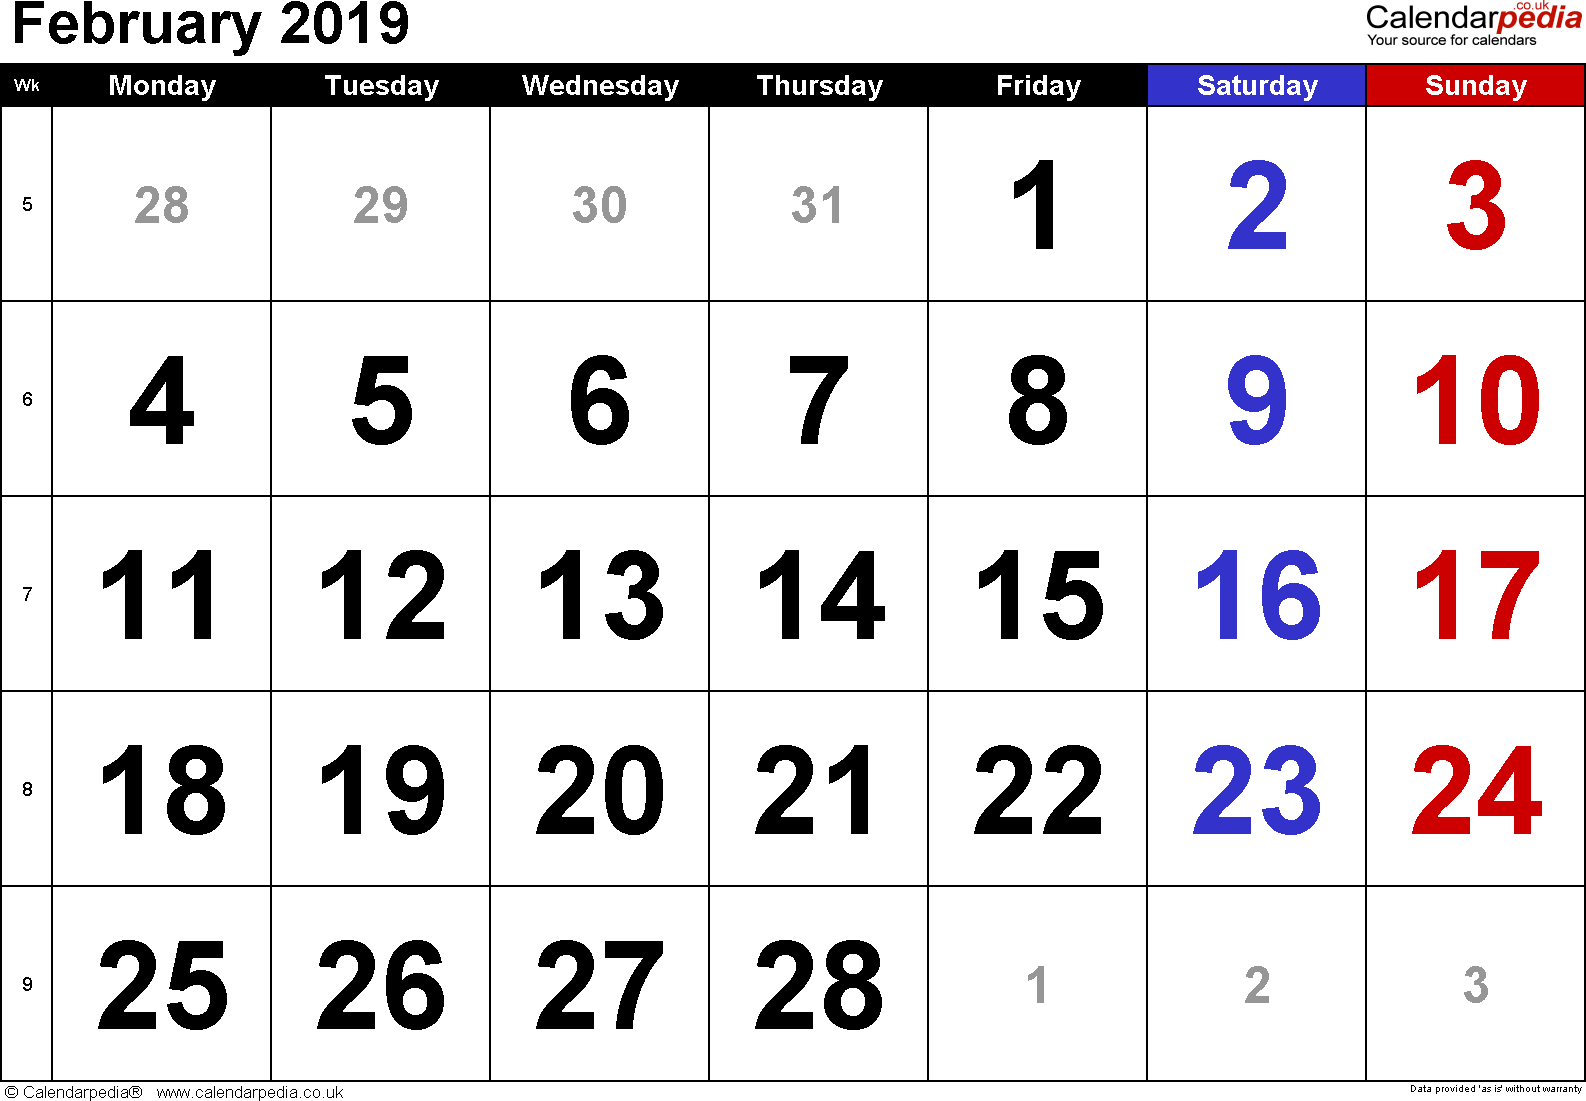 Calendar February 2019, landscape orientation, large numerals, 1 page, with UK bank holidays and week numbers